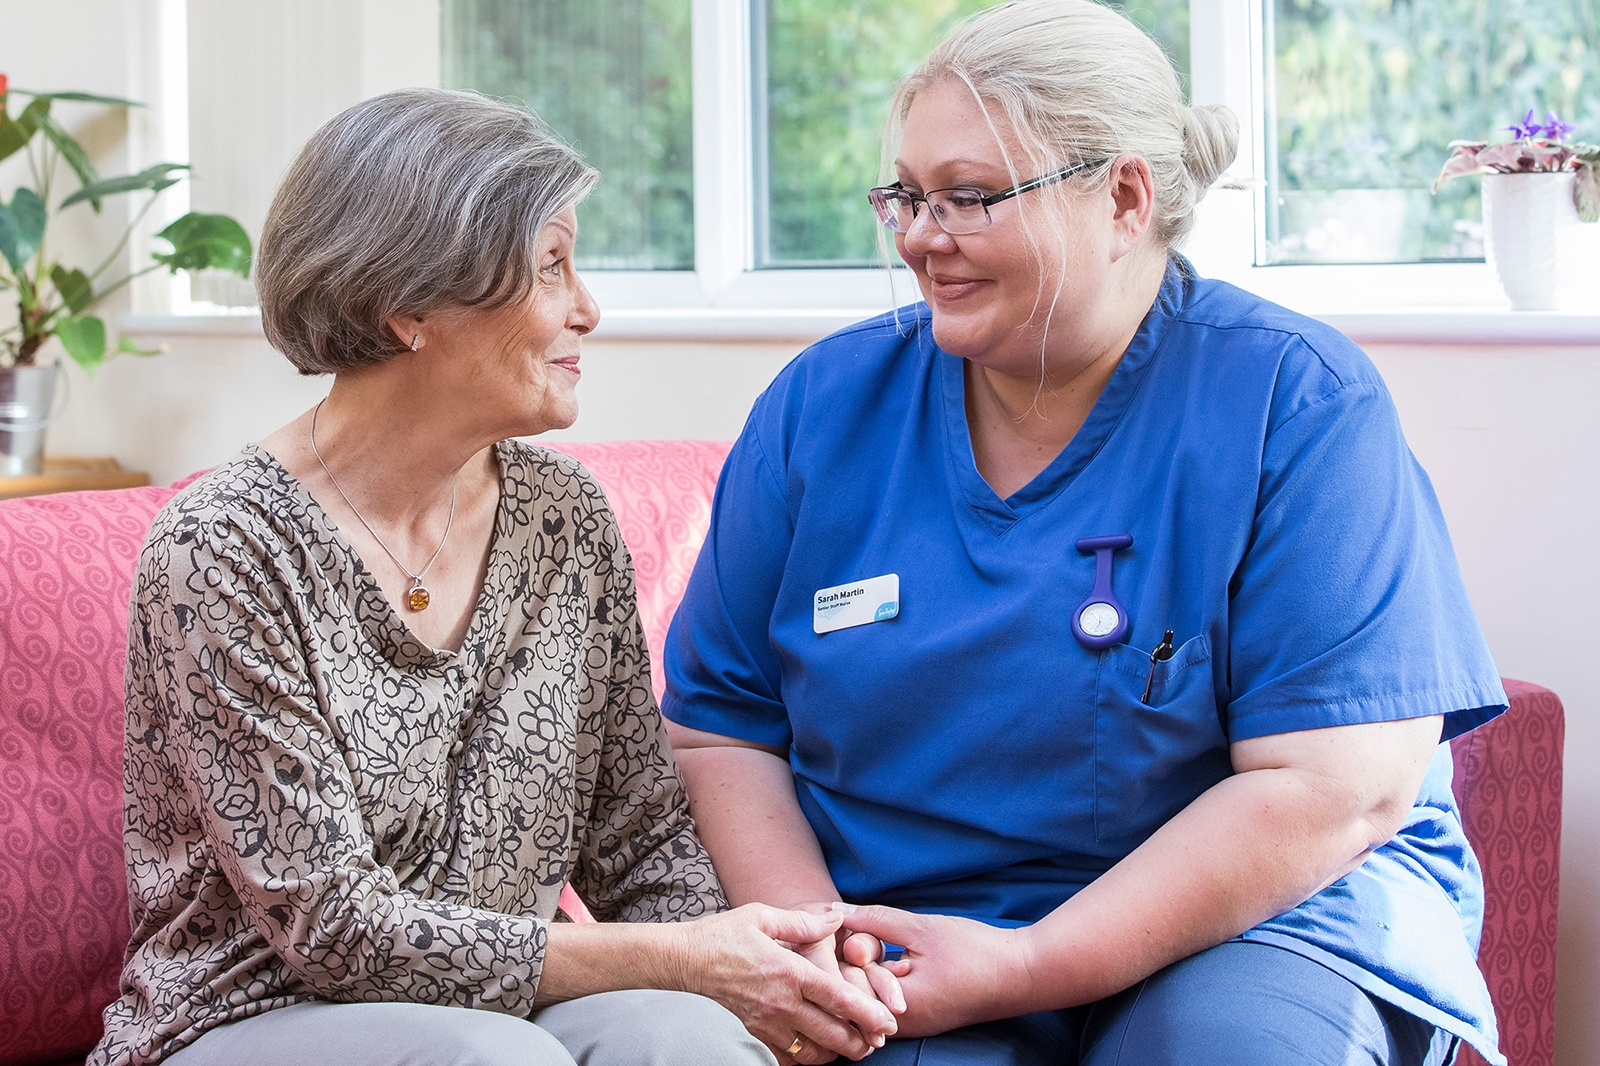 Image of a Sue Ryder nurse and patient smiling and holding hands